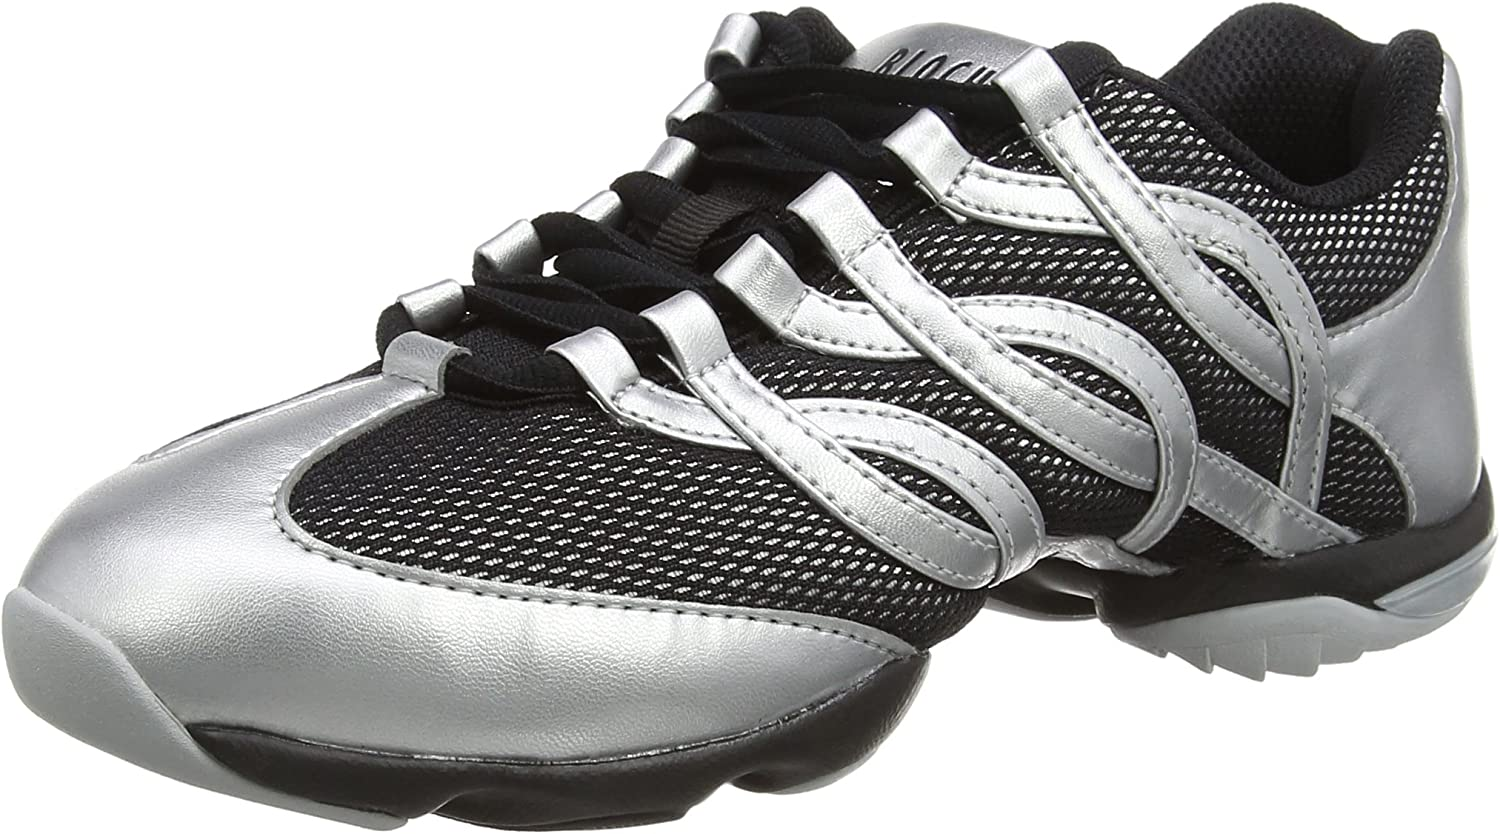 Various sizes S0522 White and Black Bloch Twist split sole dance sneakers